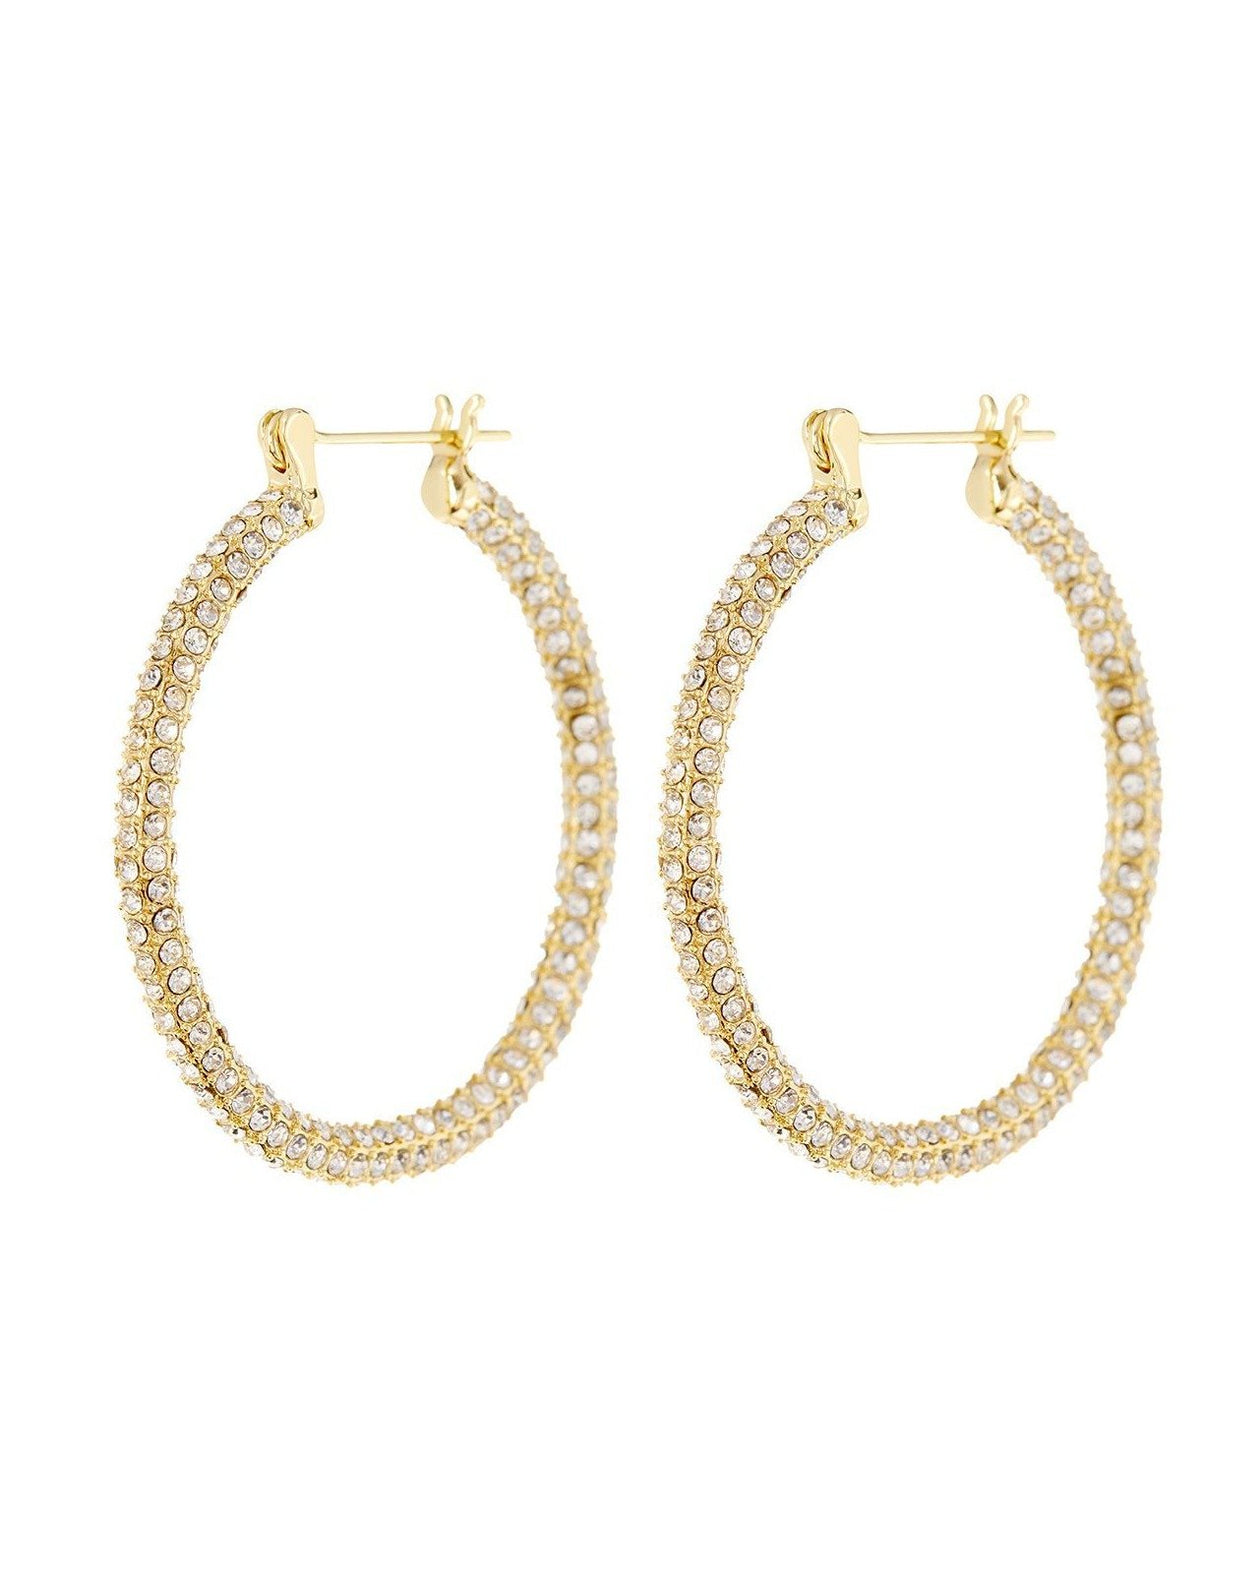 Pave Skinny Amalfi Hoops - Gold | Luv AJ - Holiday 2020 | Women's Jewelry